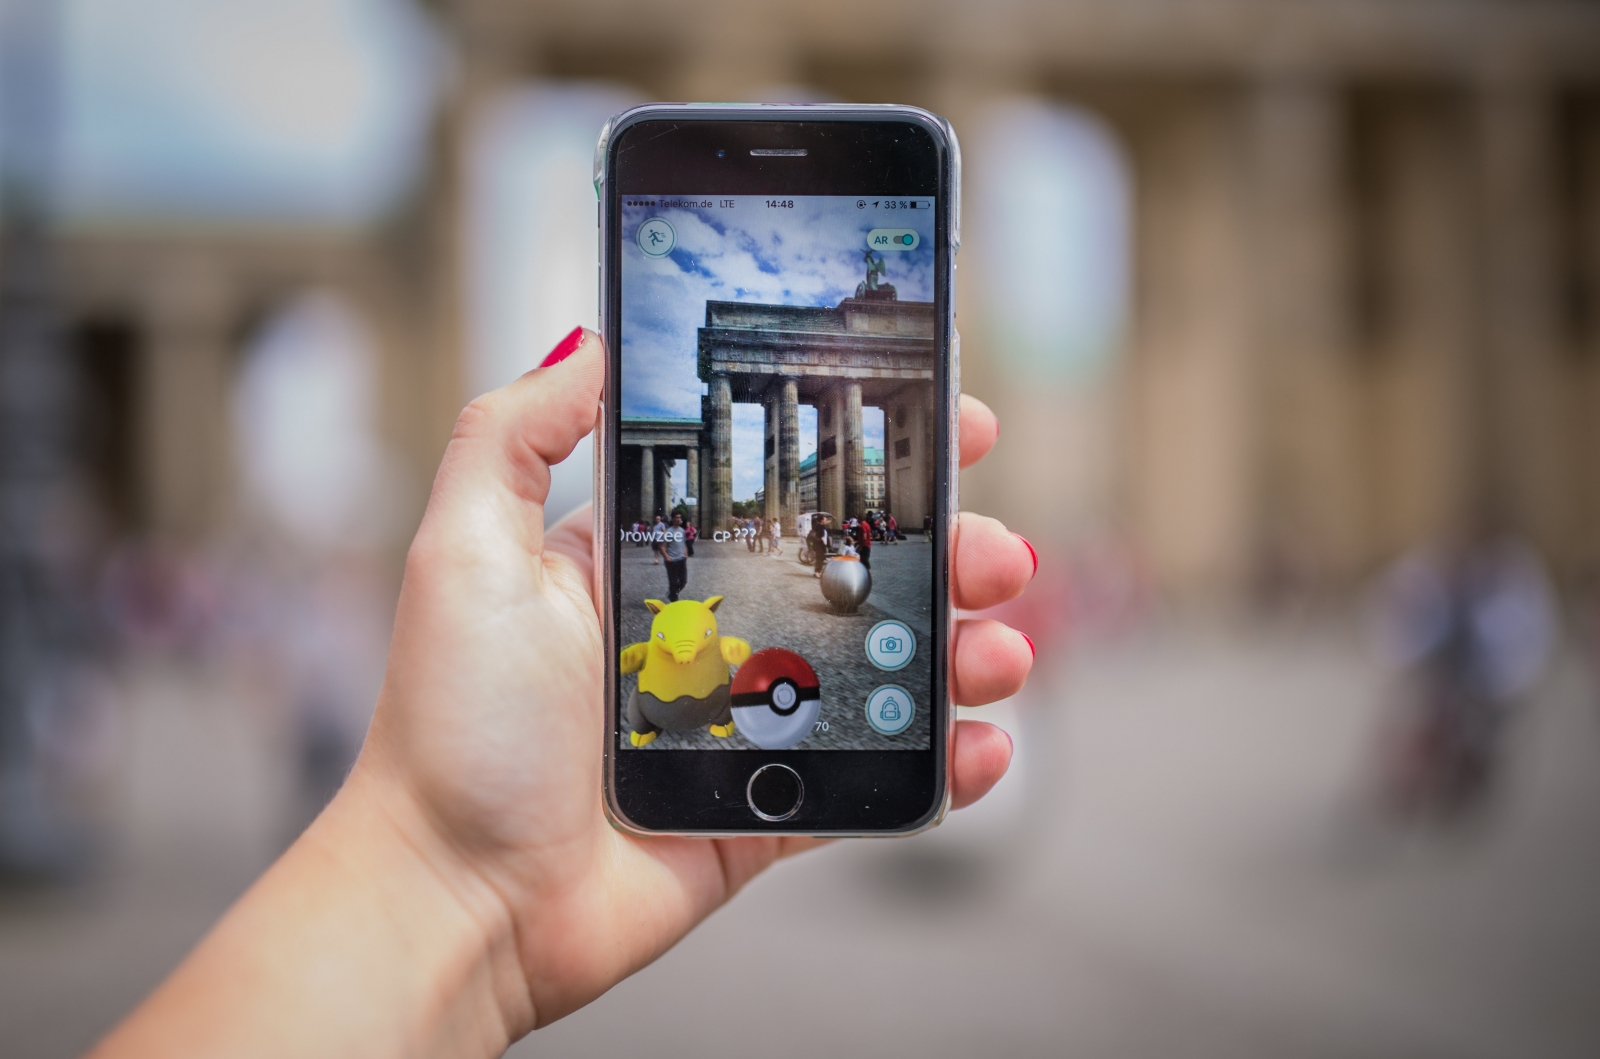 Pokemon Go fake Android app delivers first ever lockscreen malware that clicks on porn ads